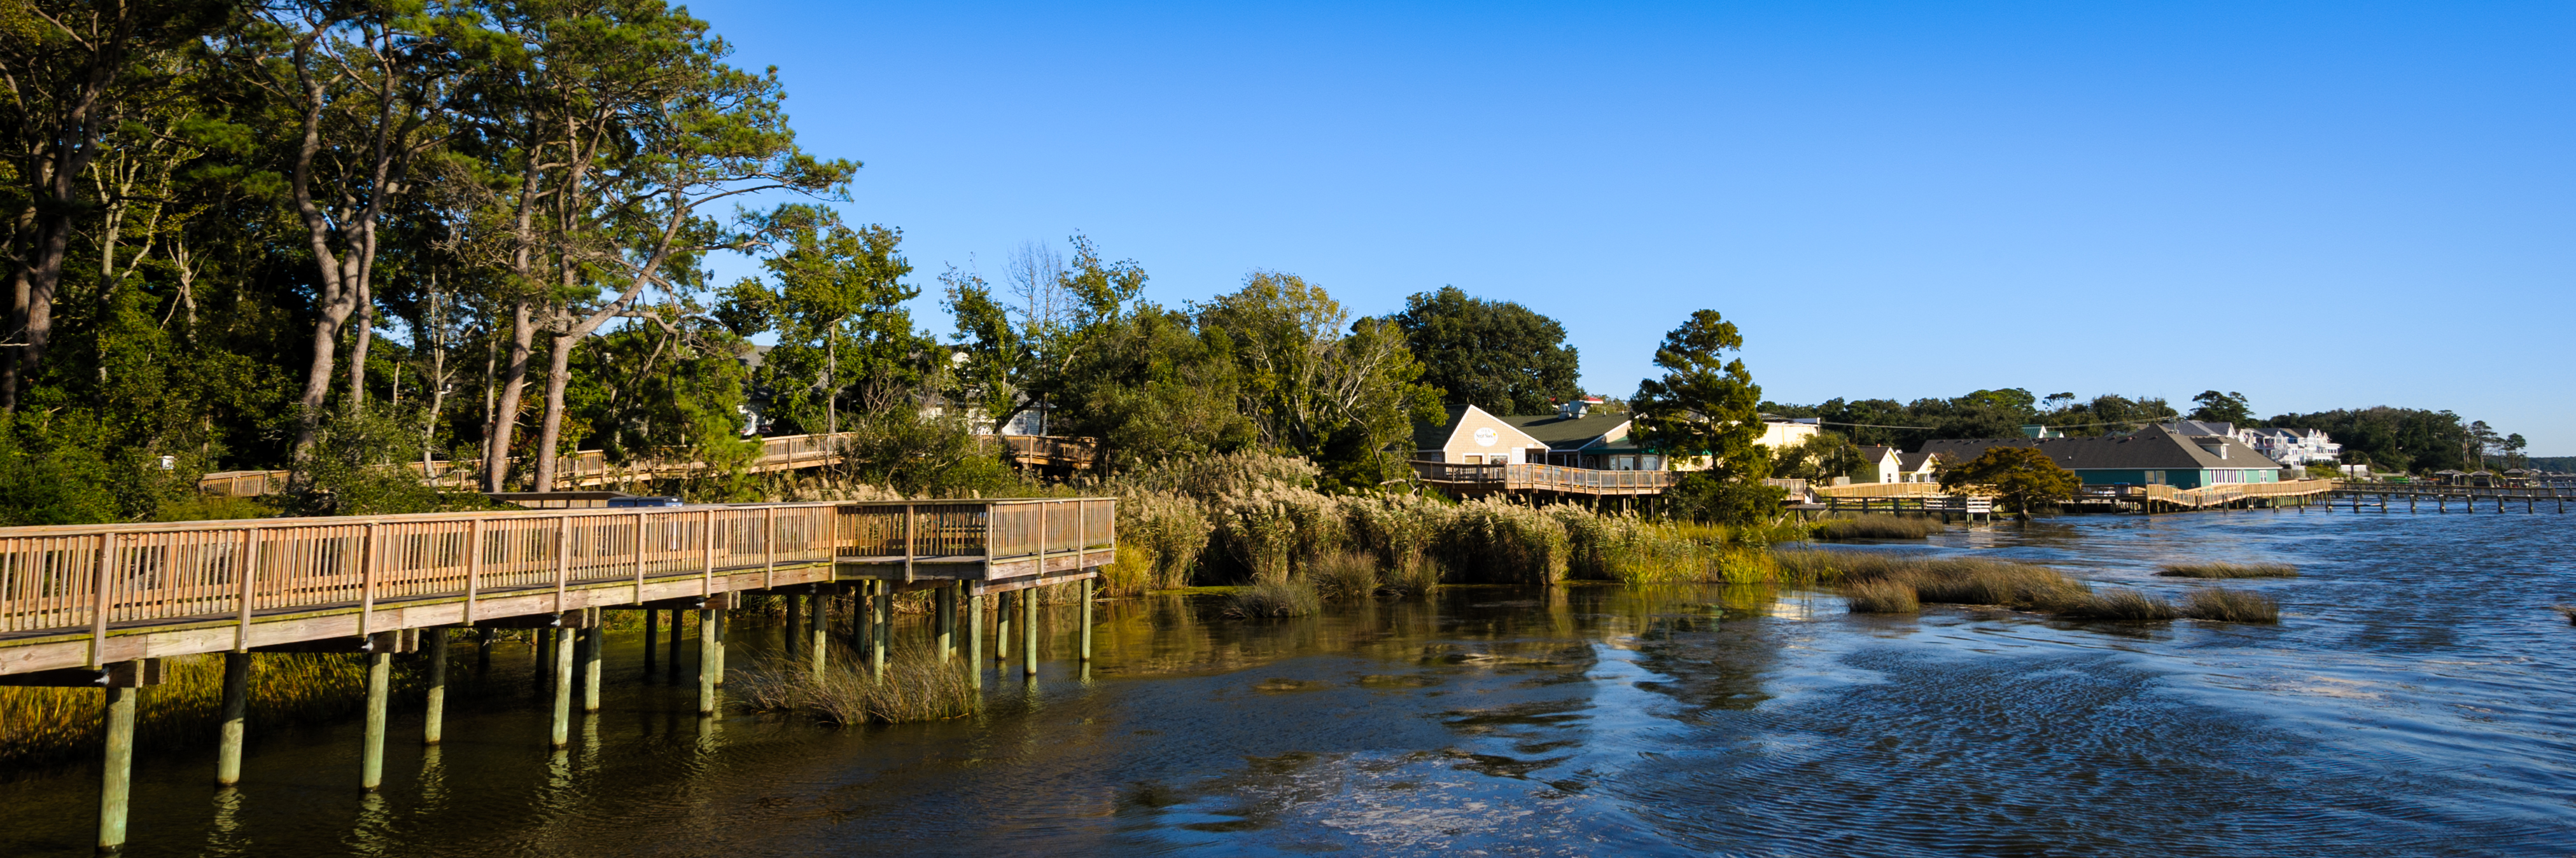 Welcome to North Carolina's Outer Banks - Outer Banks Community ...